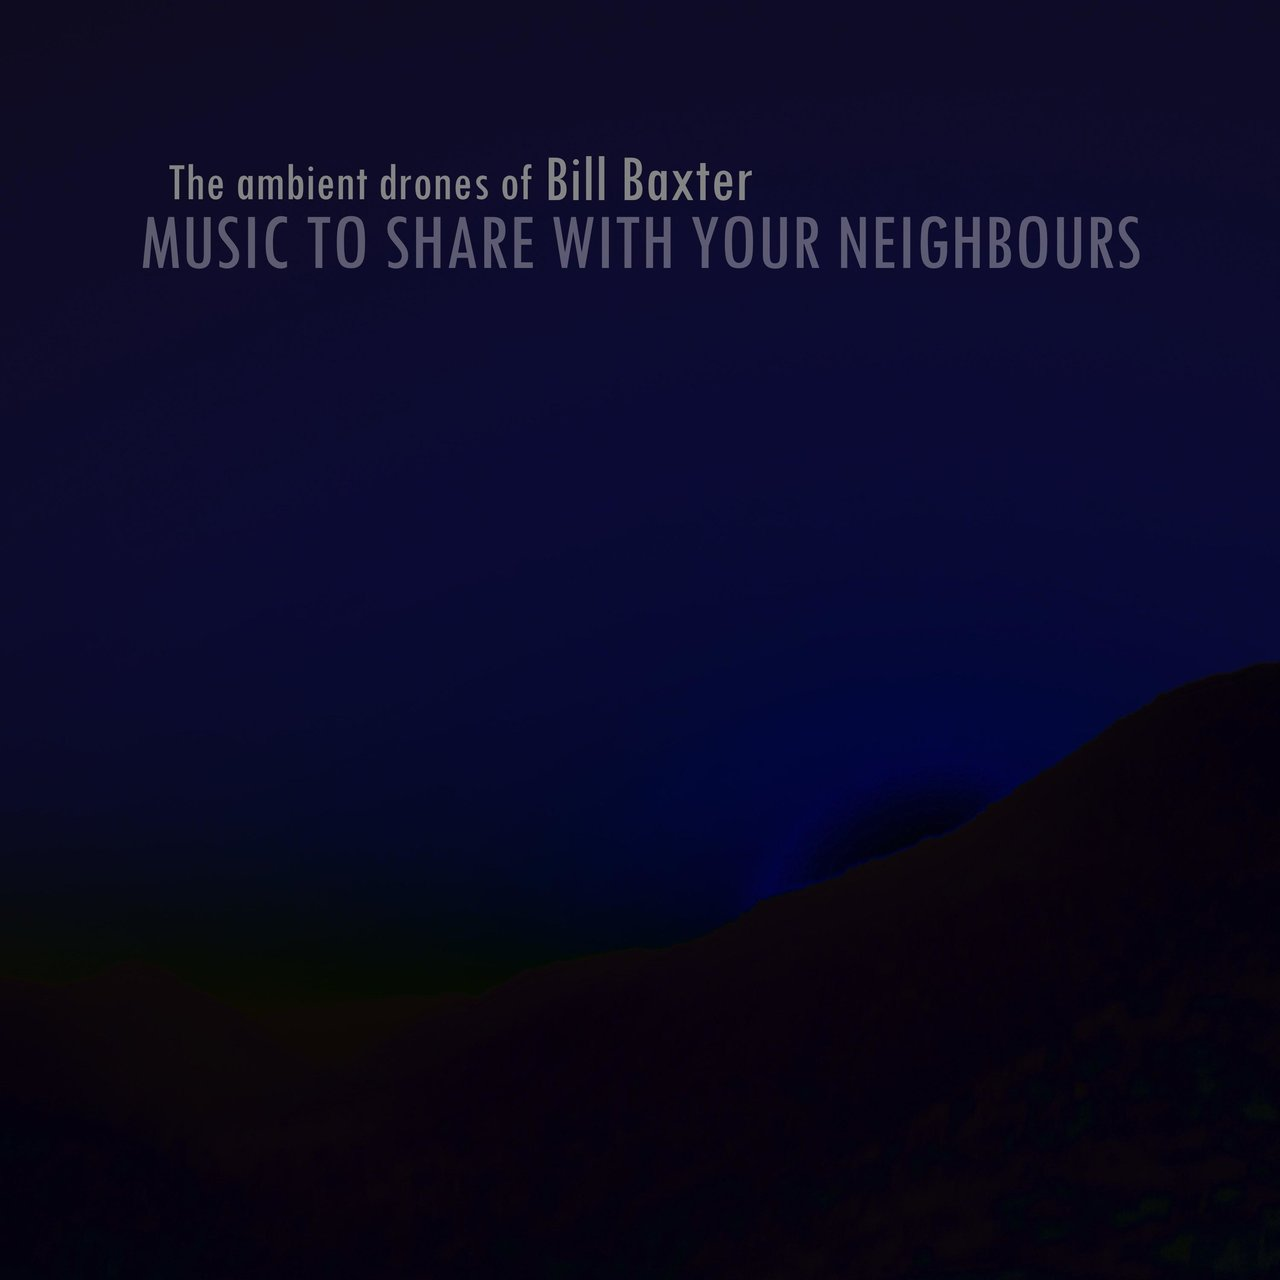 Listen to Music to Share with Your Neighbours by The Ambient Drones